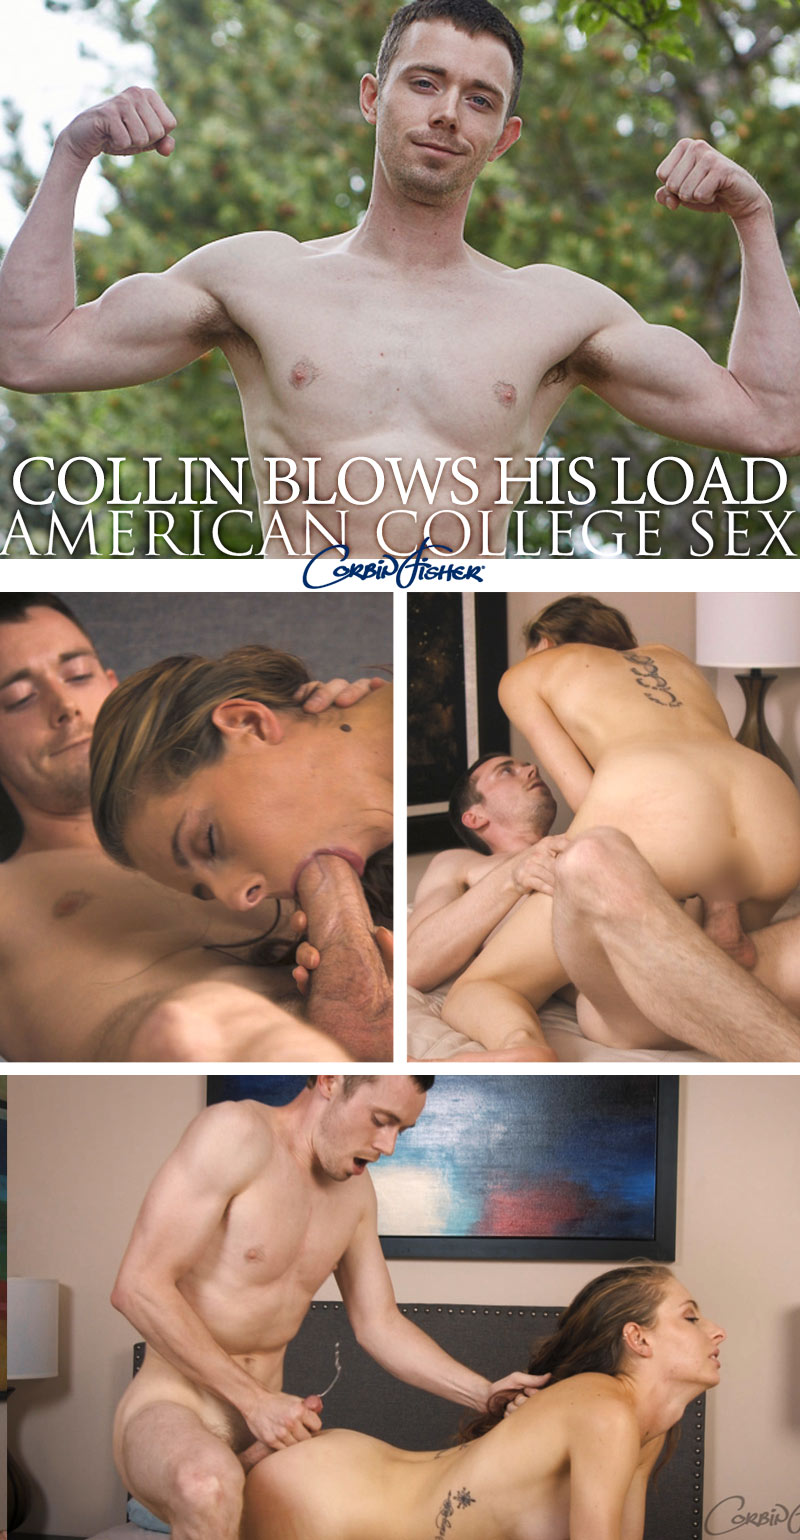 Collin Blows His Load at AmateurCollegeSex